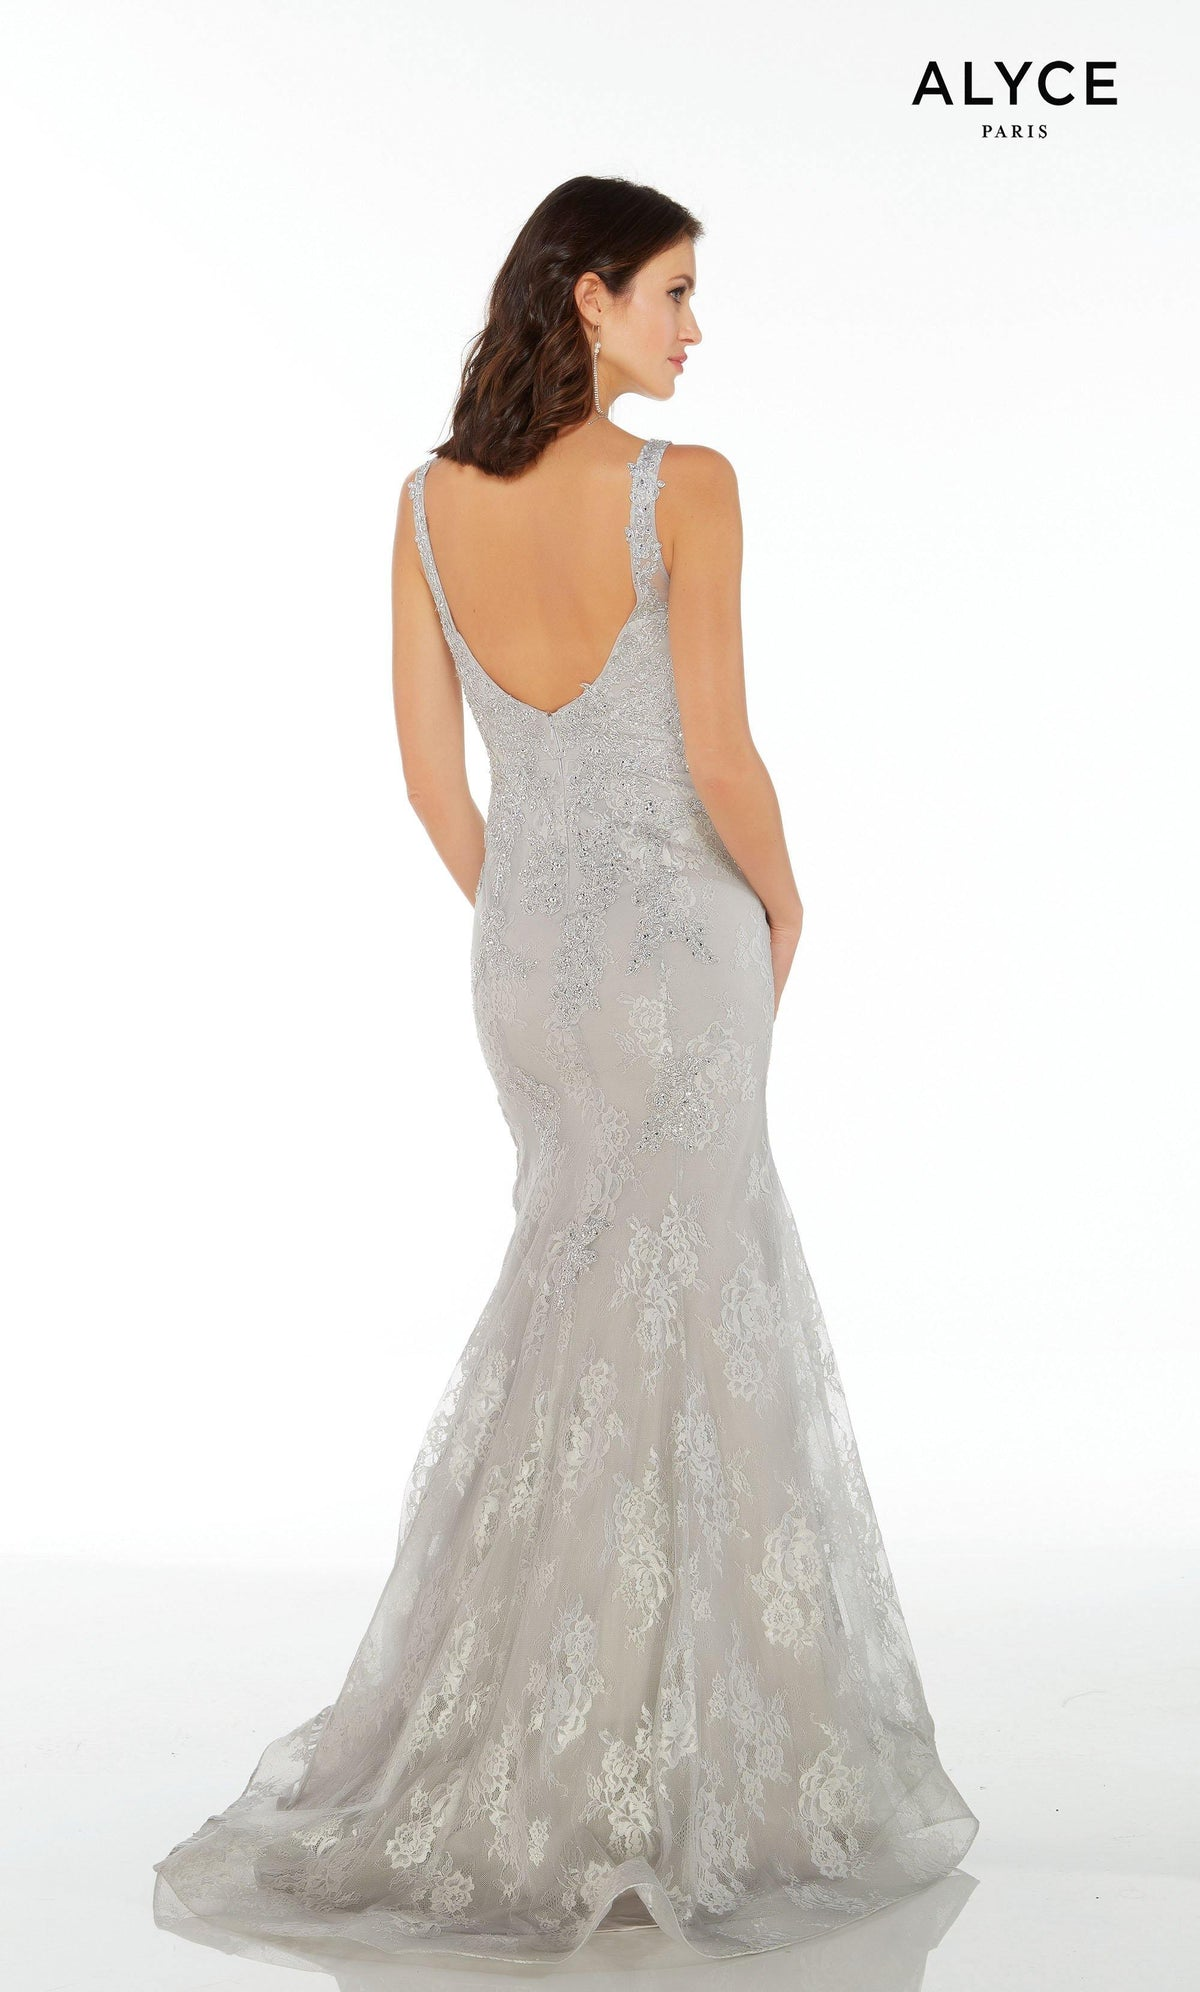 Silver long lace formal dress for women with a V-shaped back and a court train